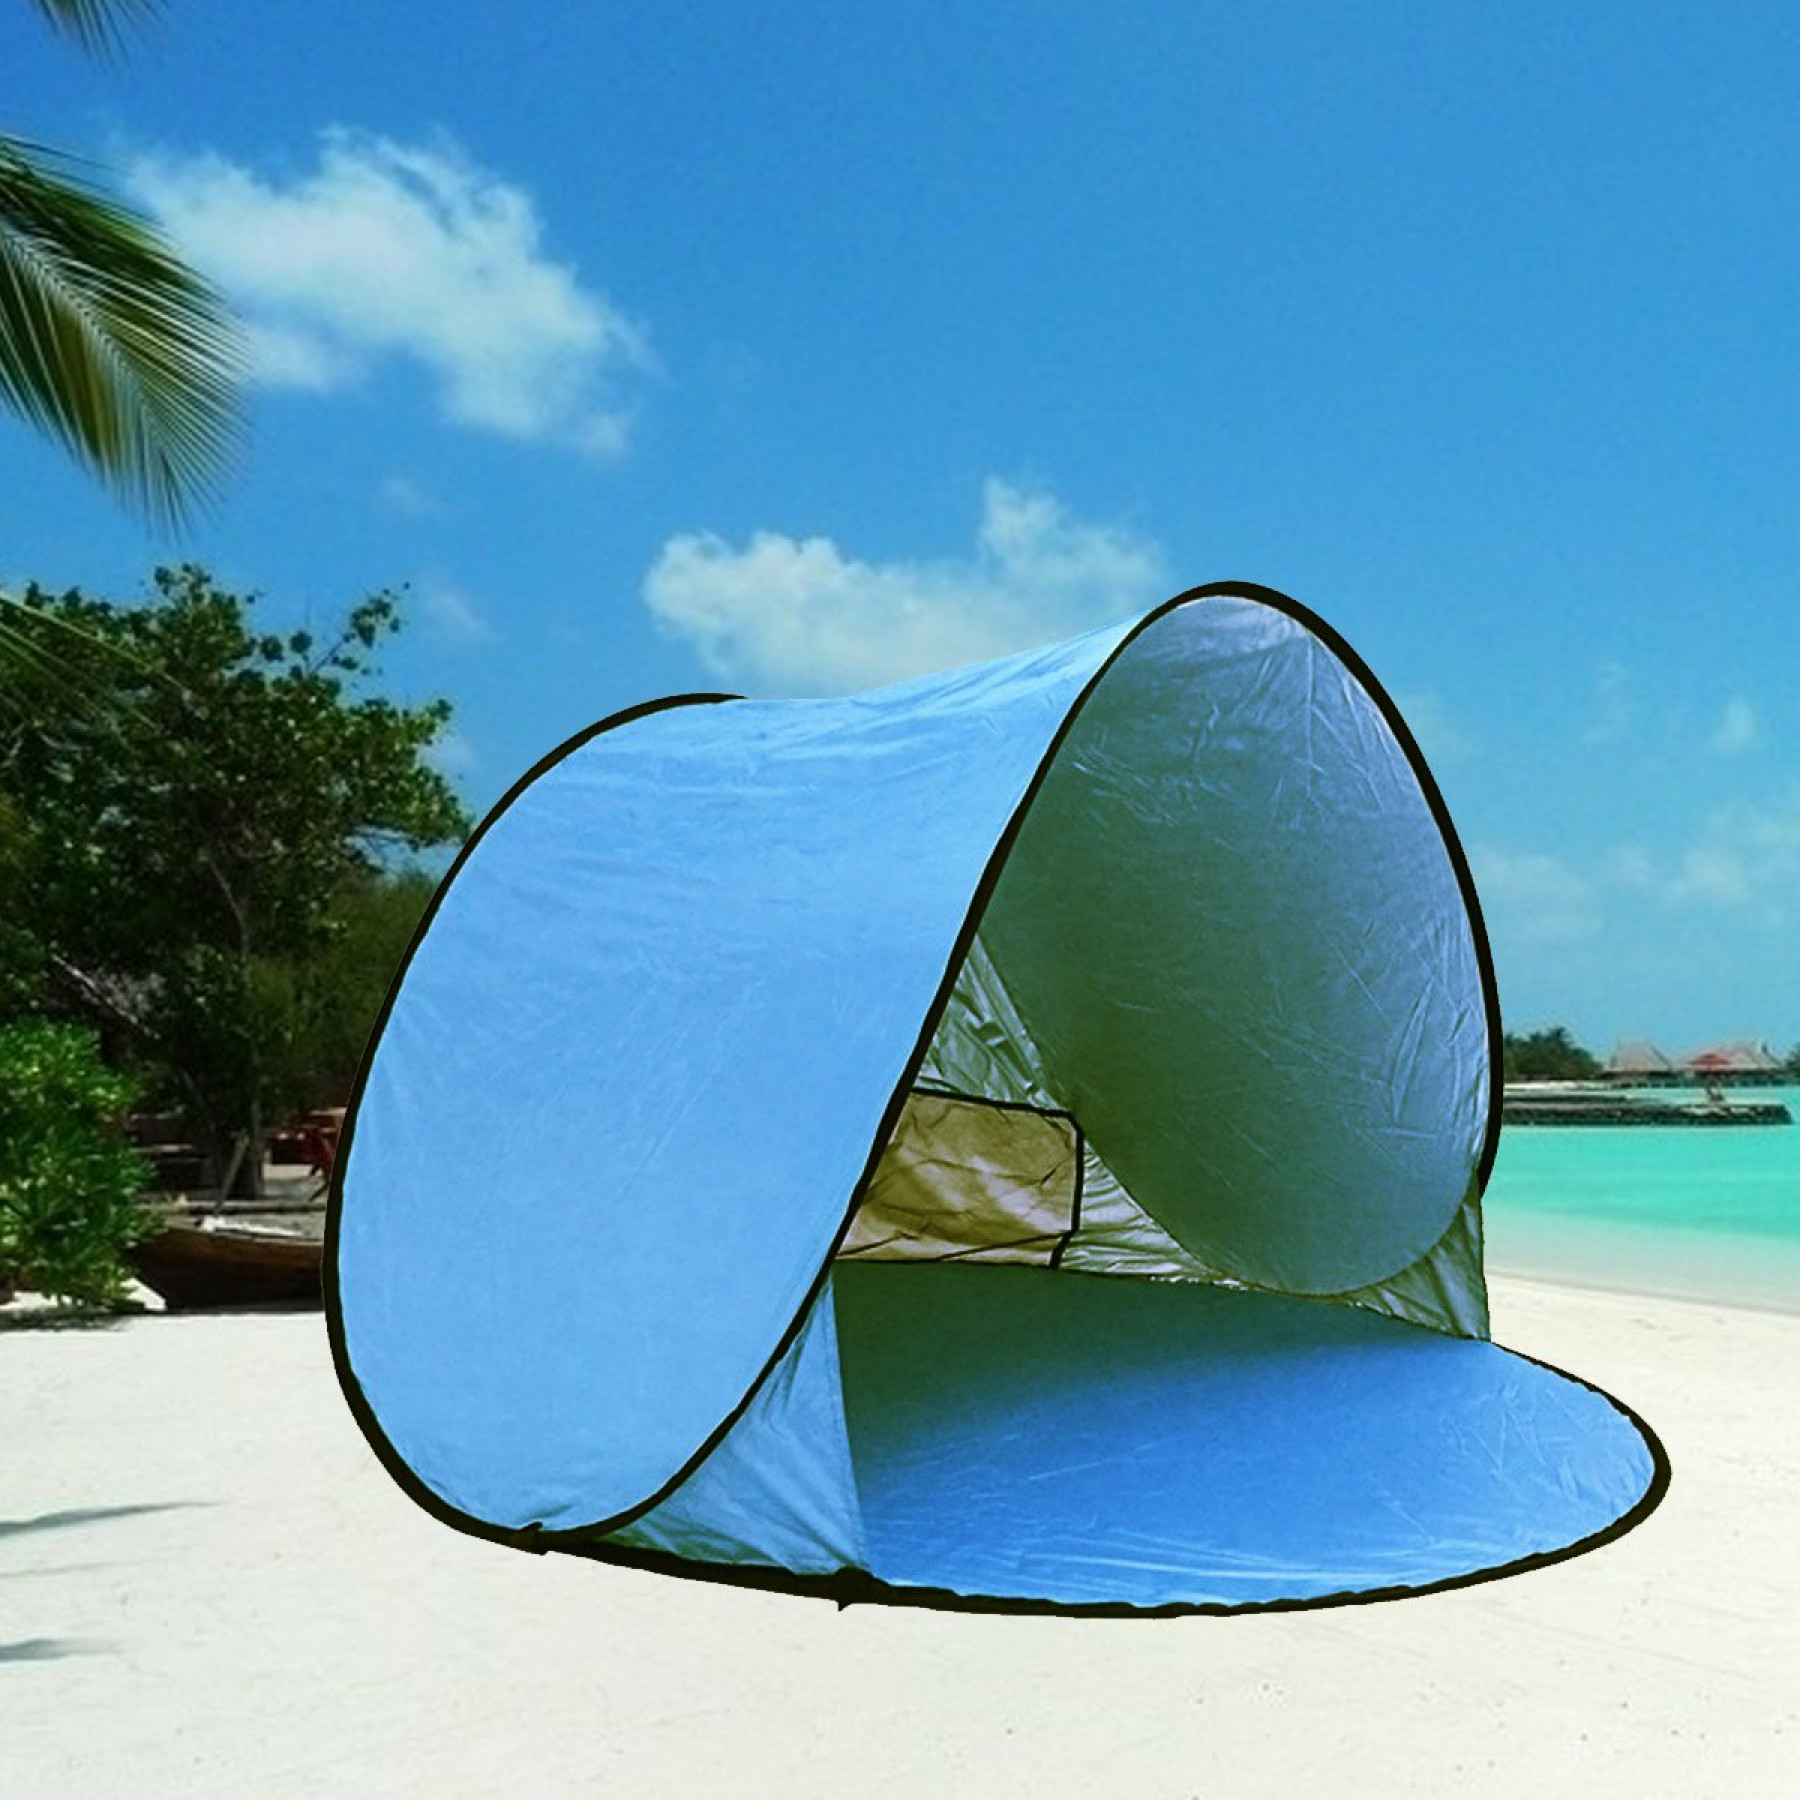 Beach Tents Cabanas : Automatic pop up beach tent portable lightweight sun